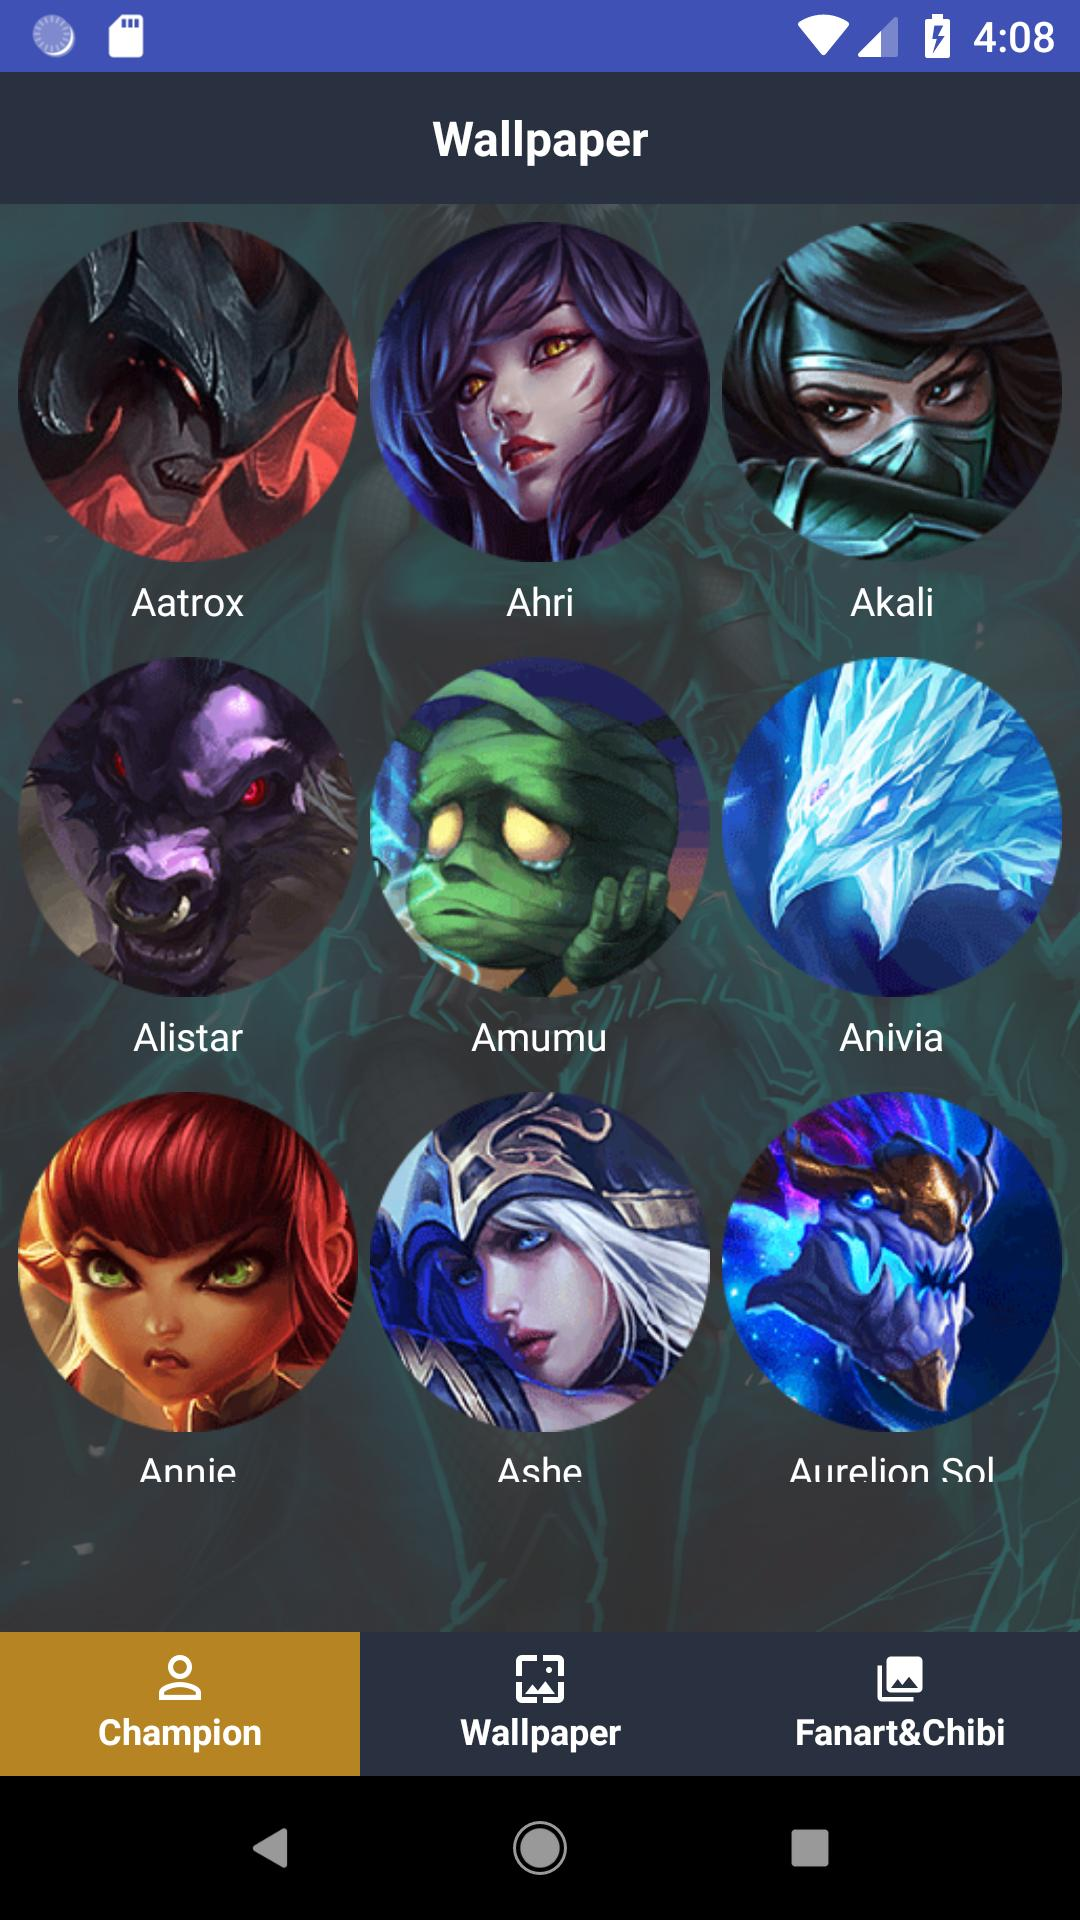 Legends Wallpapers Hd Of League Lol 2018 For Android Apk